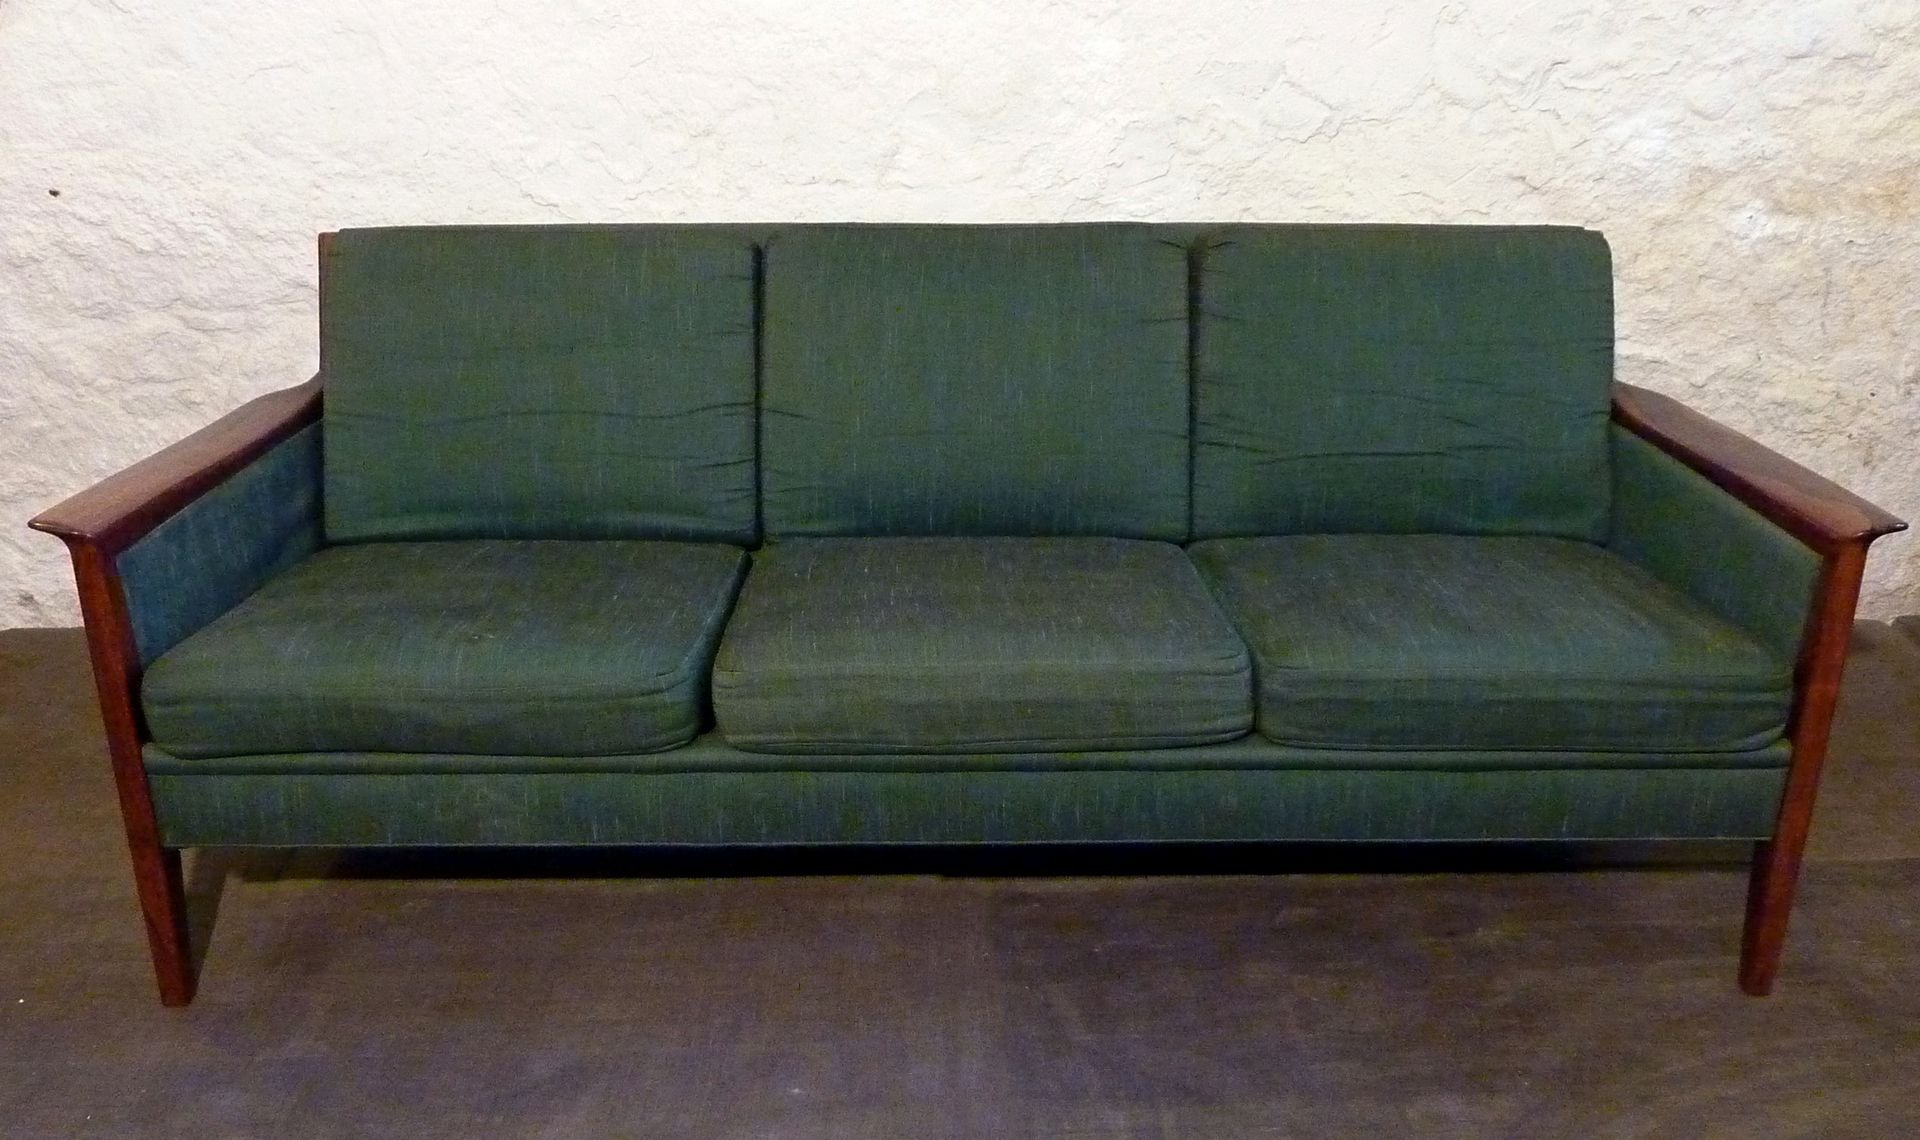 Vintage swedish sofa from br derna andersson for sale at for Swedish sofa